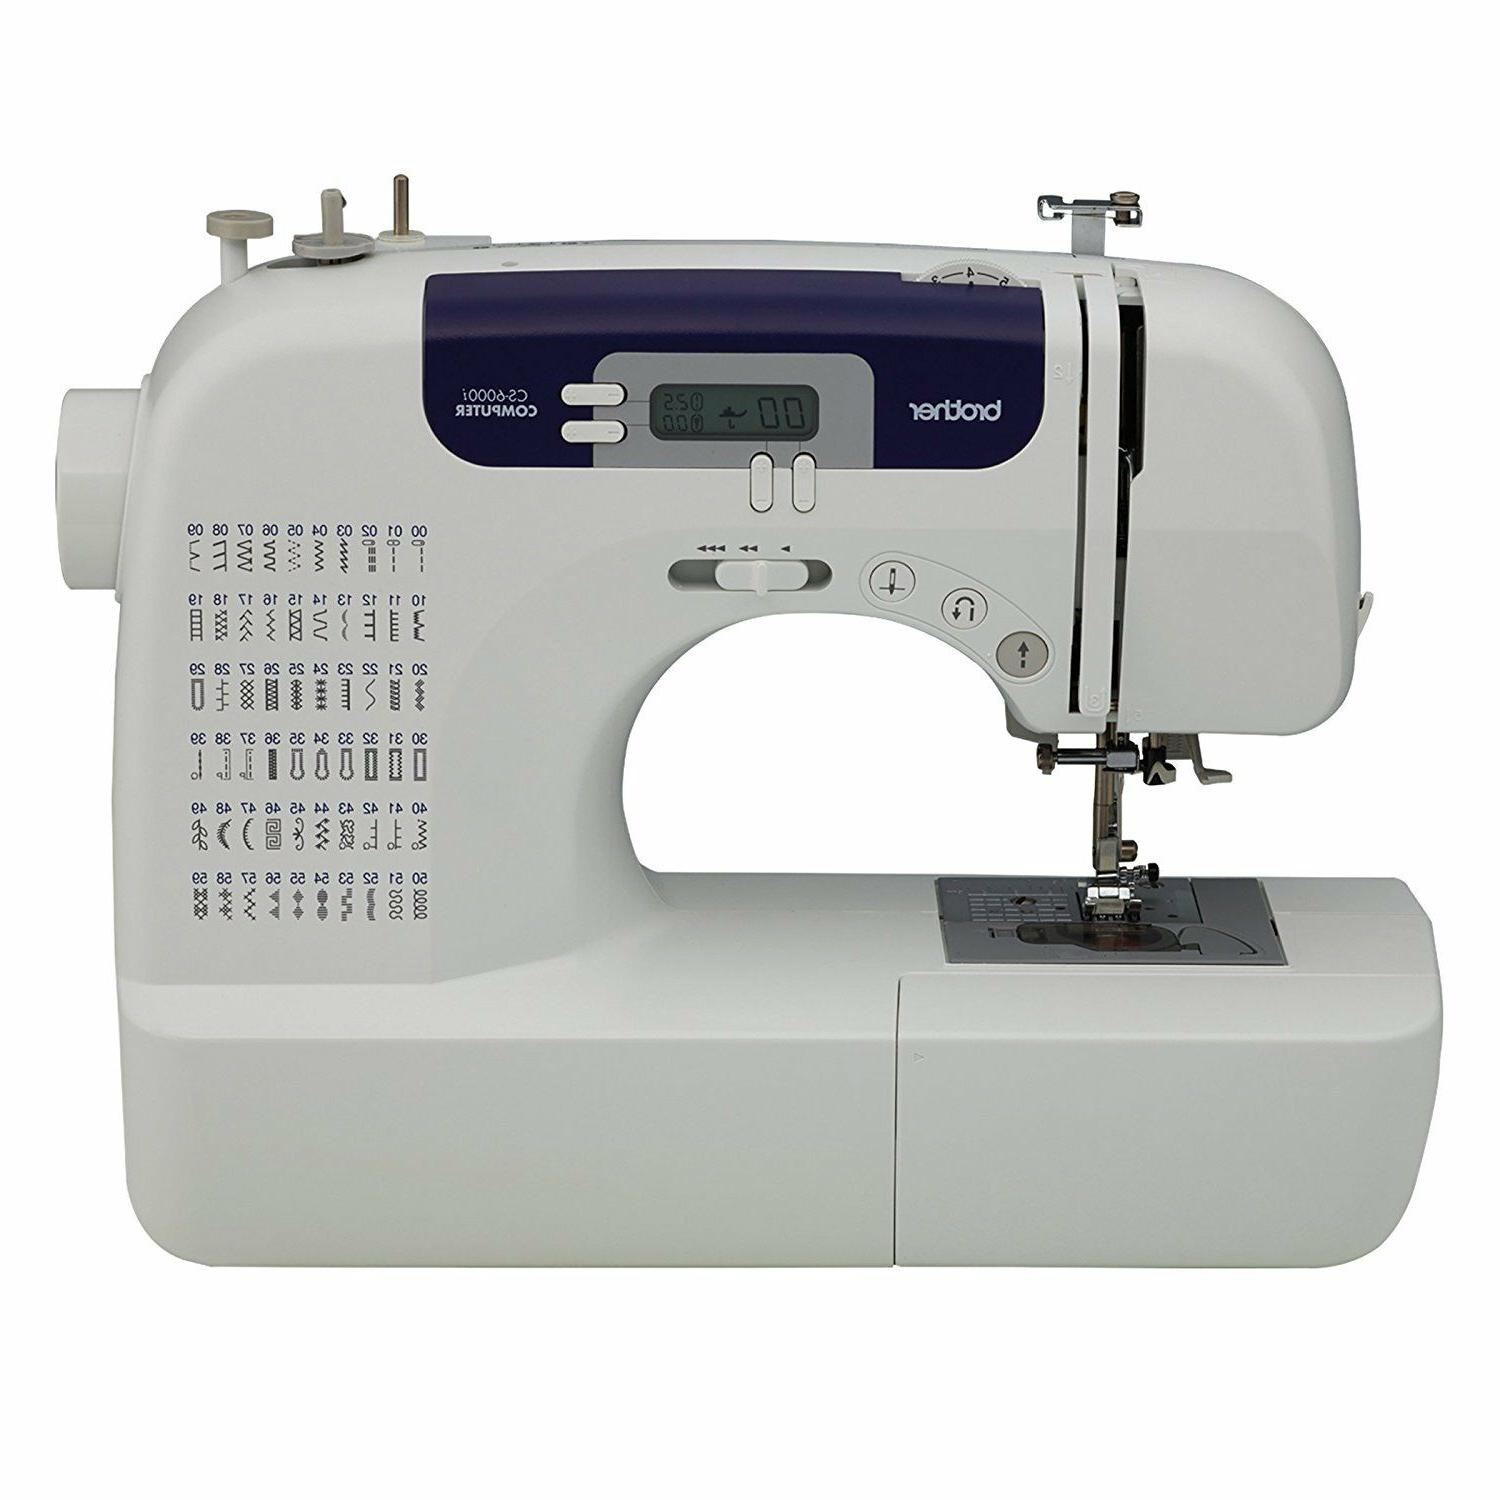 Brother CS6000i Feature-Rich Sewing Machine With 60 Built-In